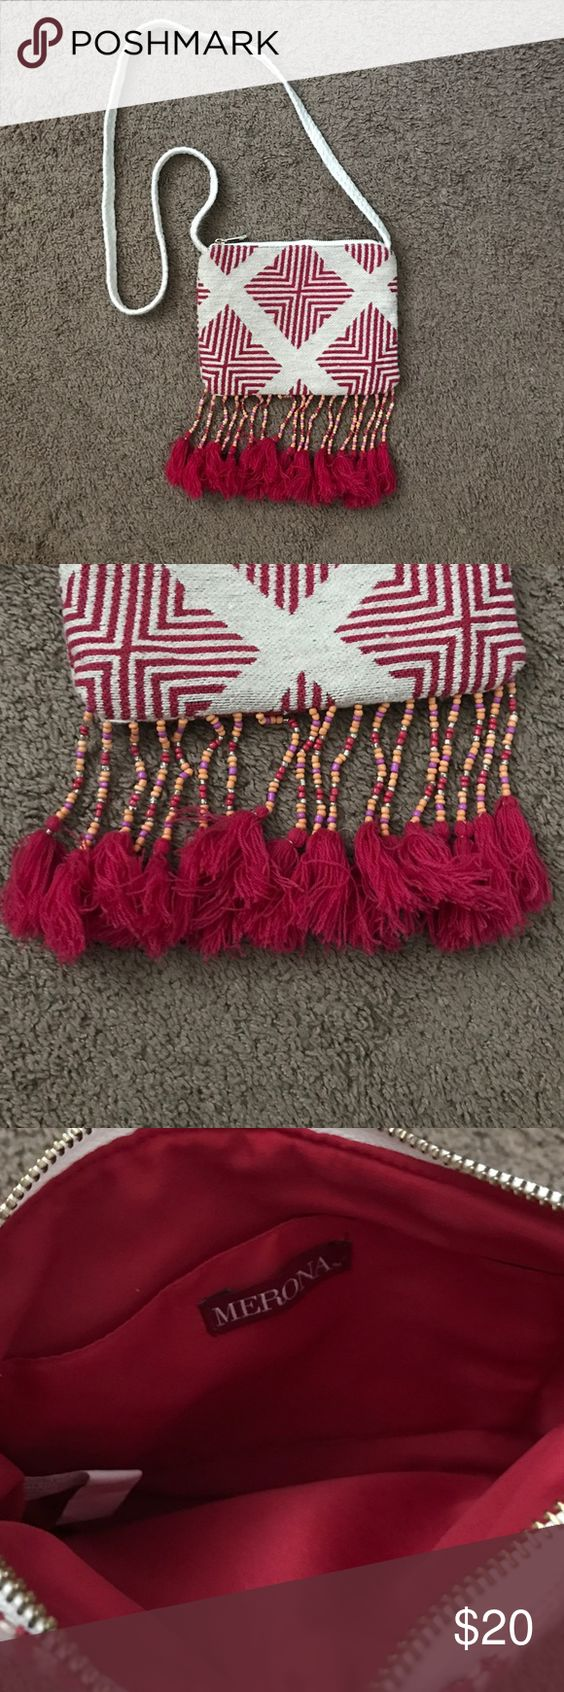 Adorable purse for sale! Super cute purse with fringe & beading at the bottom. Only used a few times! Like brand new! Merona Bags Crossbody Bags